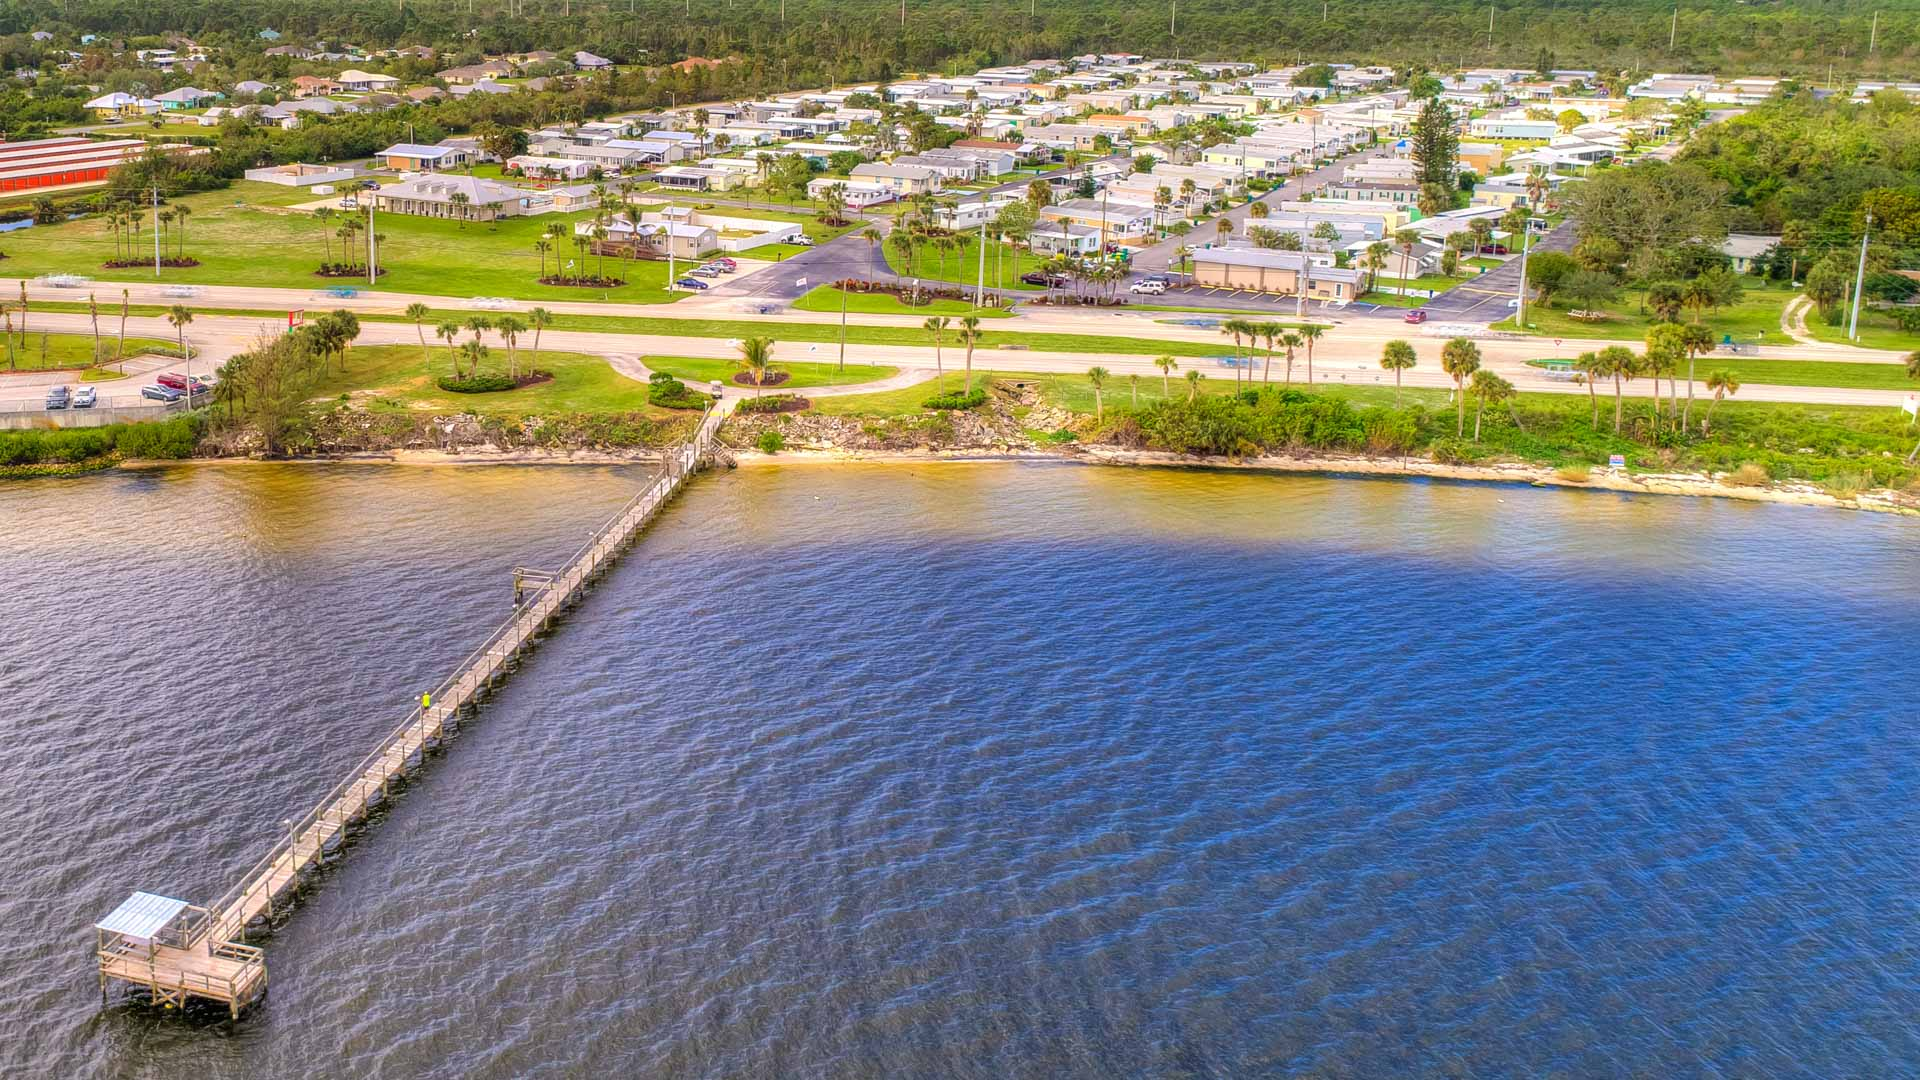 Pelican Bay 55+ Manufactured Homes Community Aerial Lagoon and Pier in Micco, FL